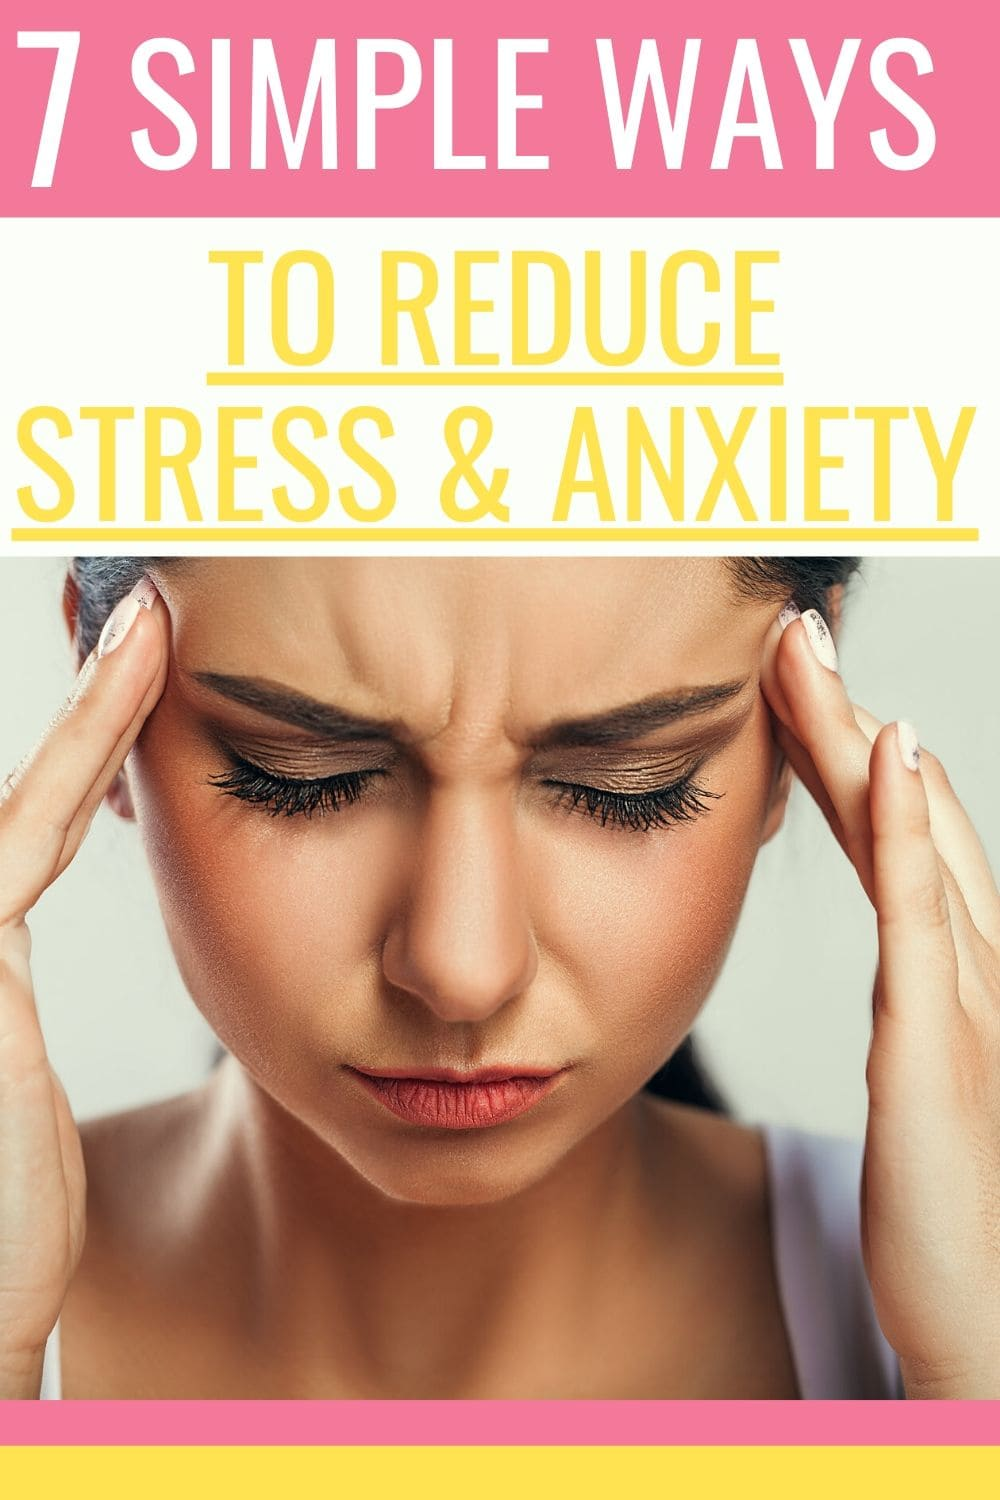 Learn about highly effective stress-relief strategies, plus get tips on stress and anxiety-relief.